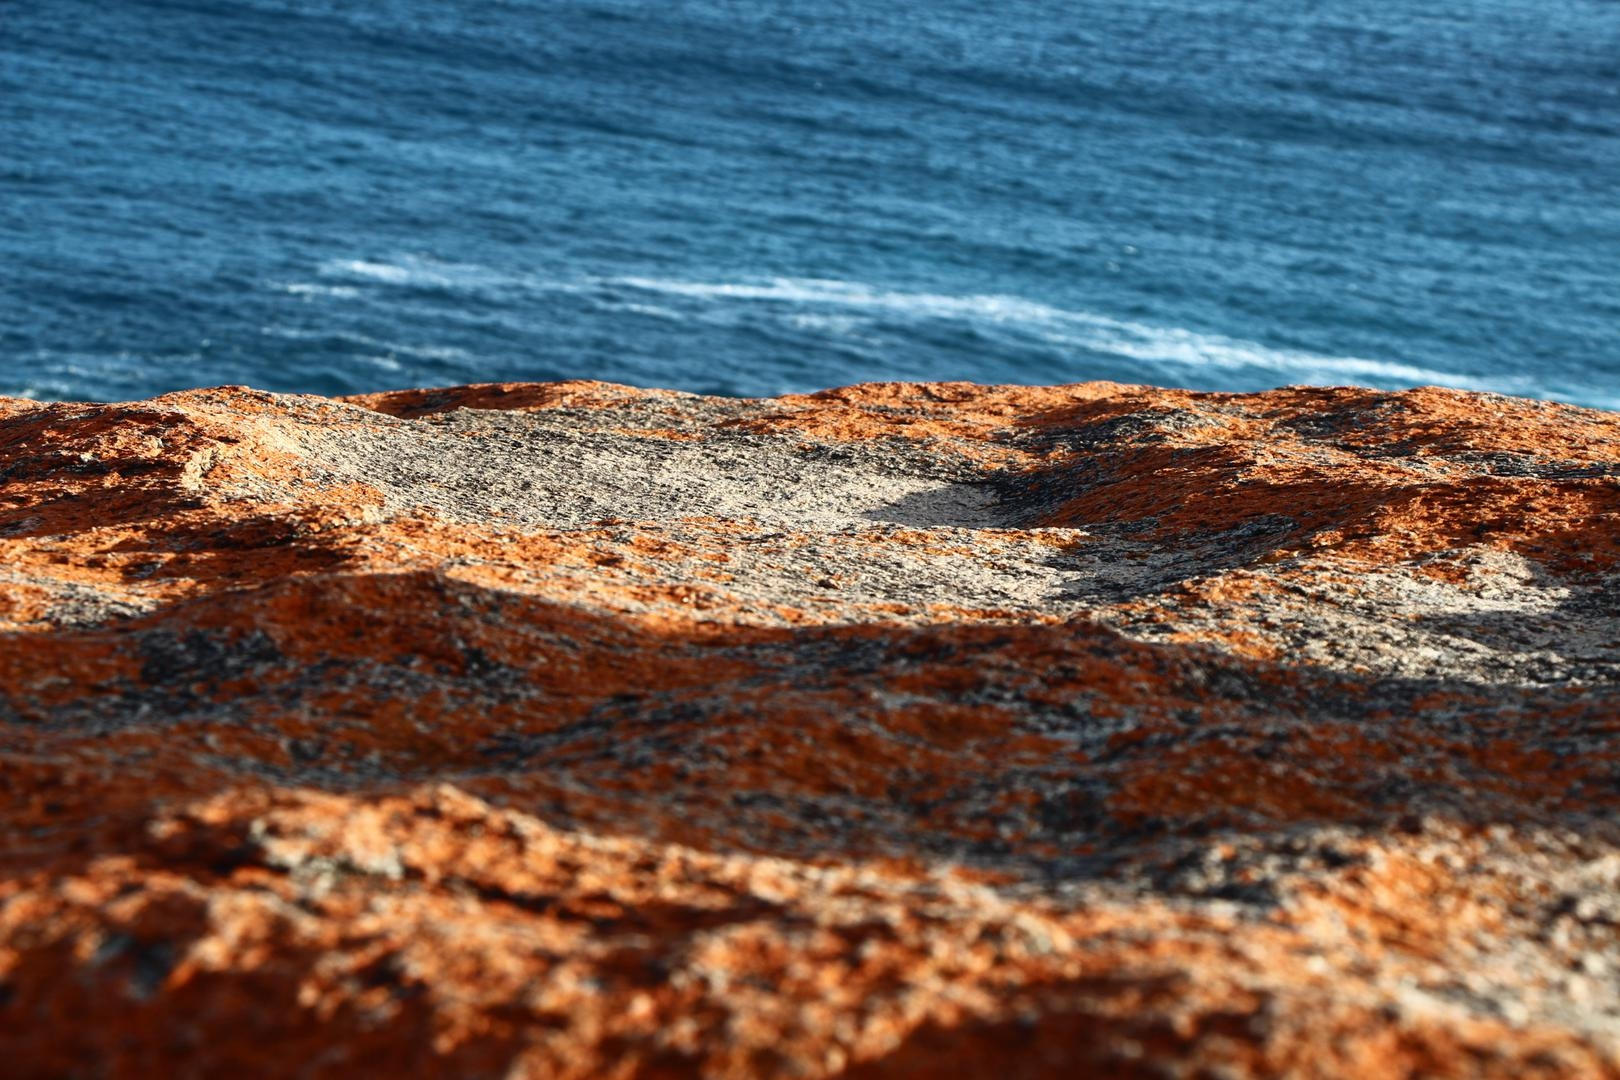 THe rocks are covered in golden-orange lichen, causing it to look yellow, orange, or red depending on the lighting.